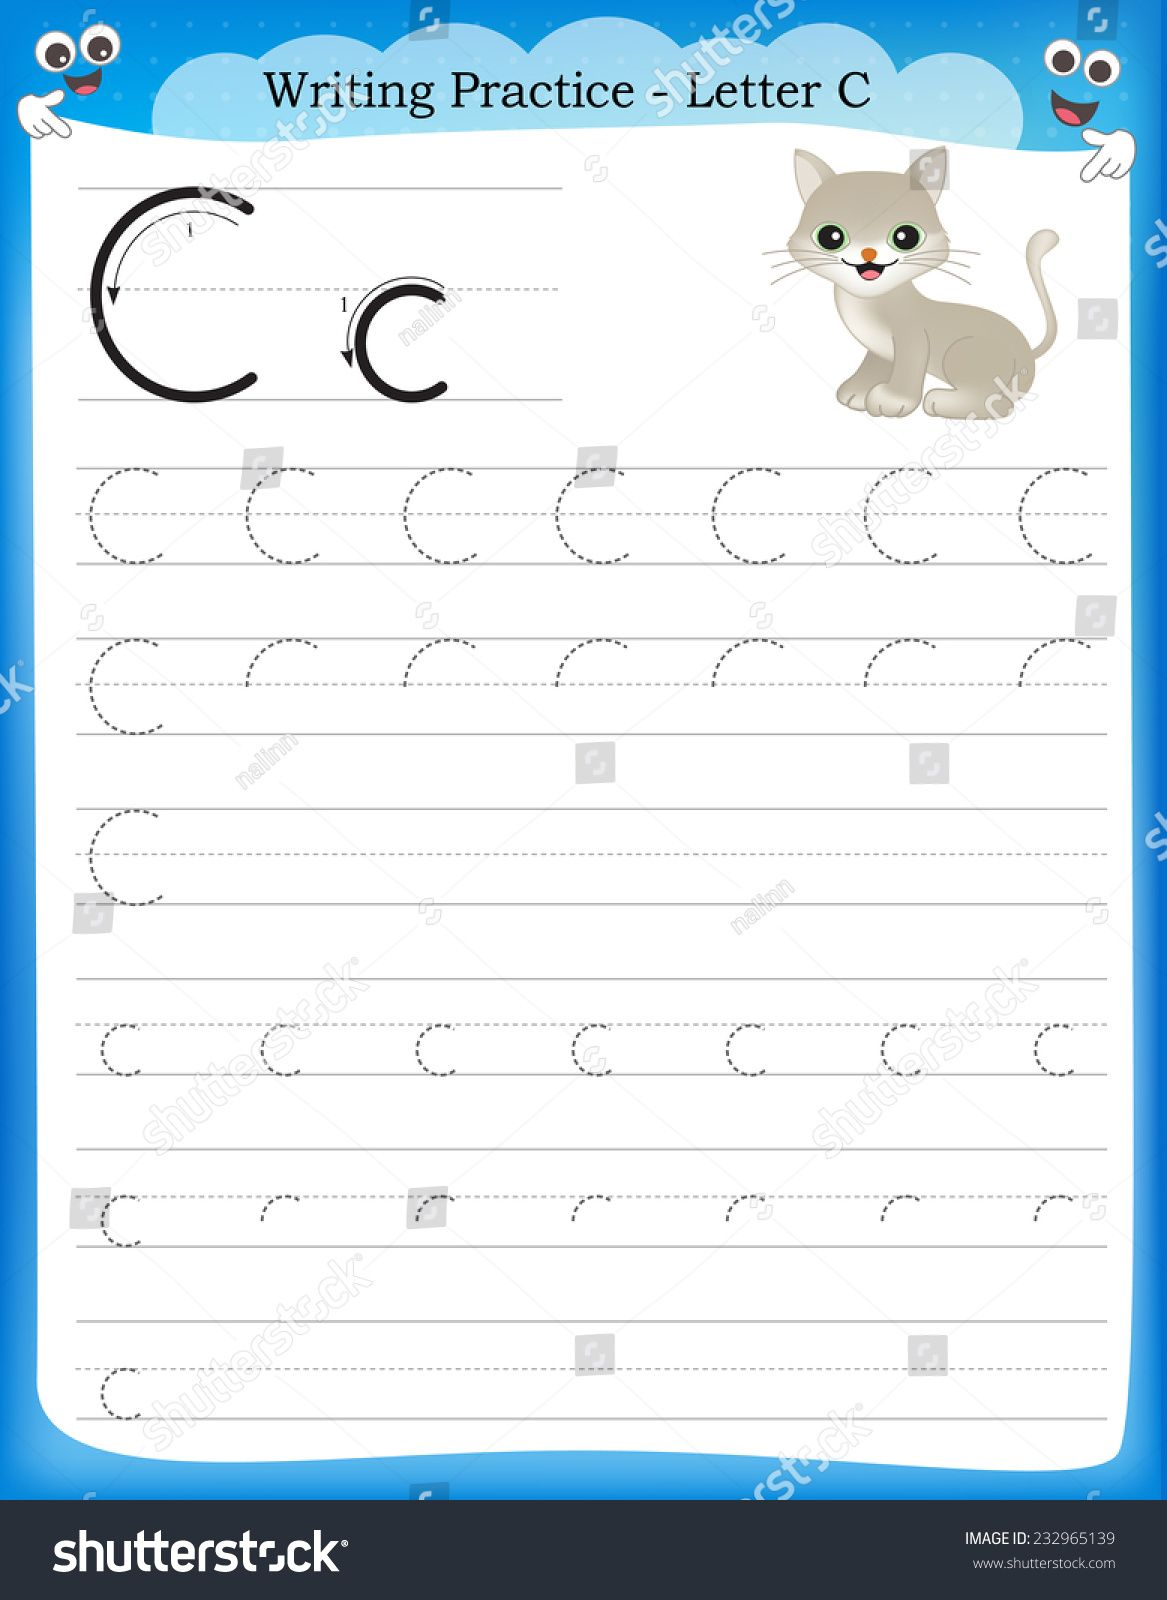 Practice Writing Letters Printable Worksheets 26